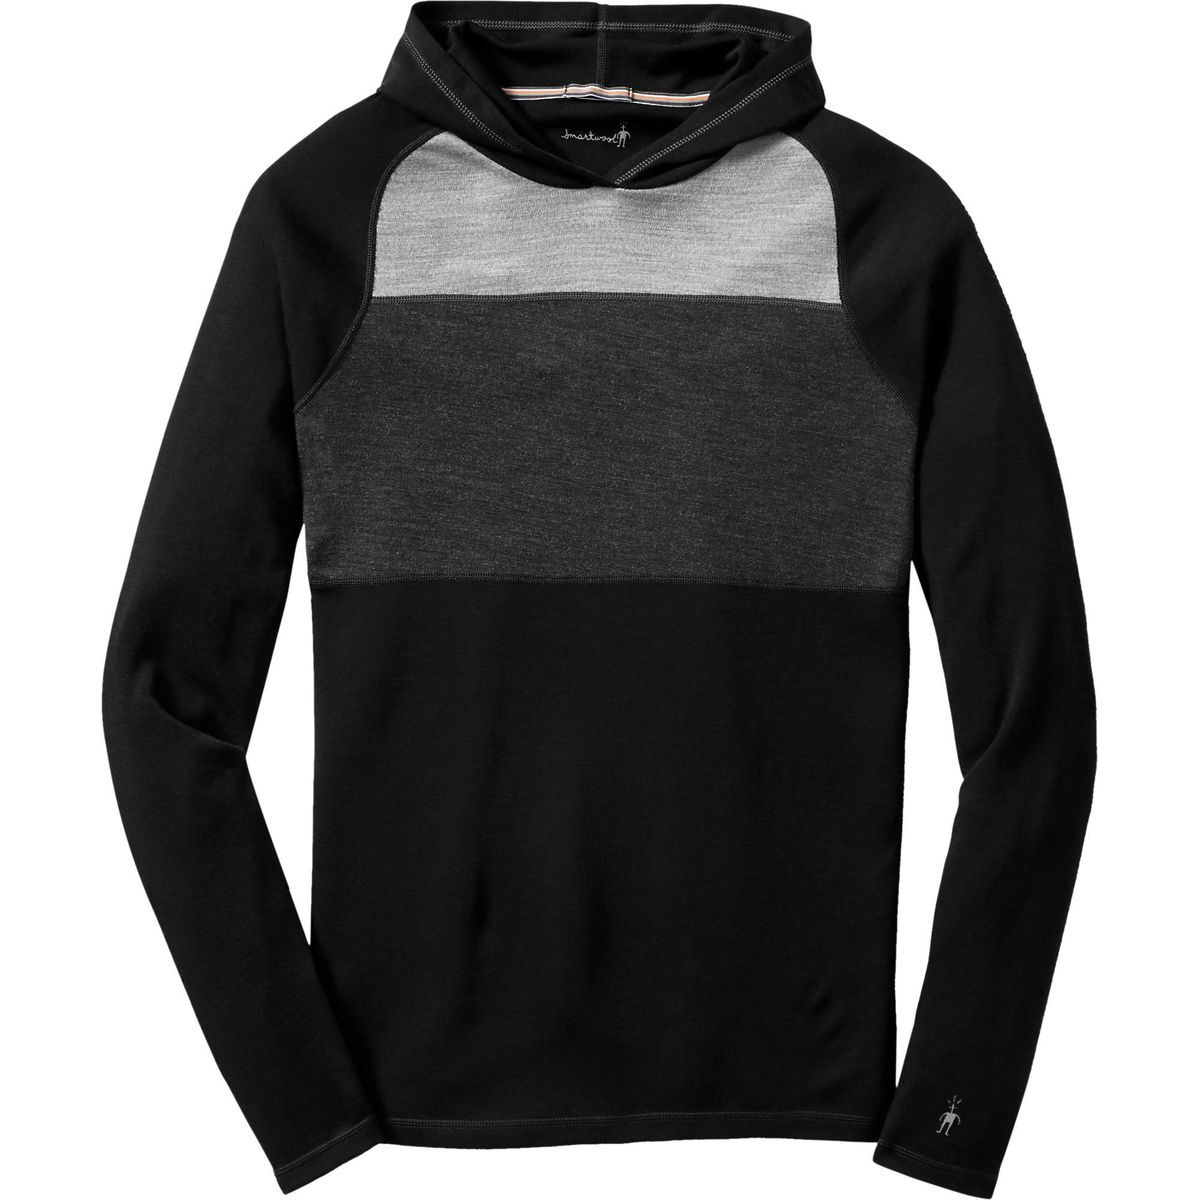 SmartWool NTS Midweight 250 Color Block Pullover Hoodie - Men